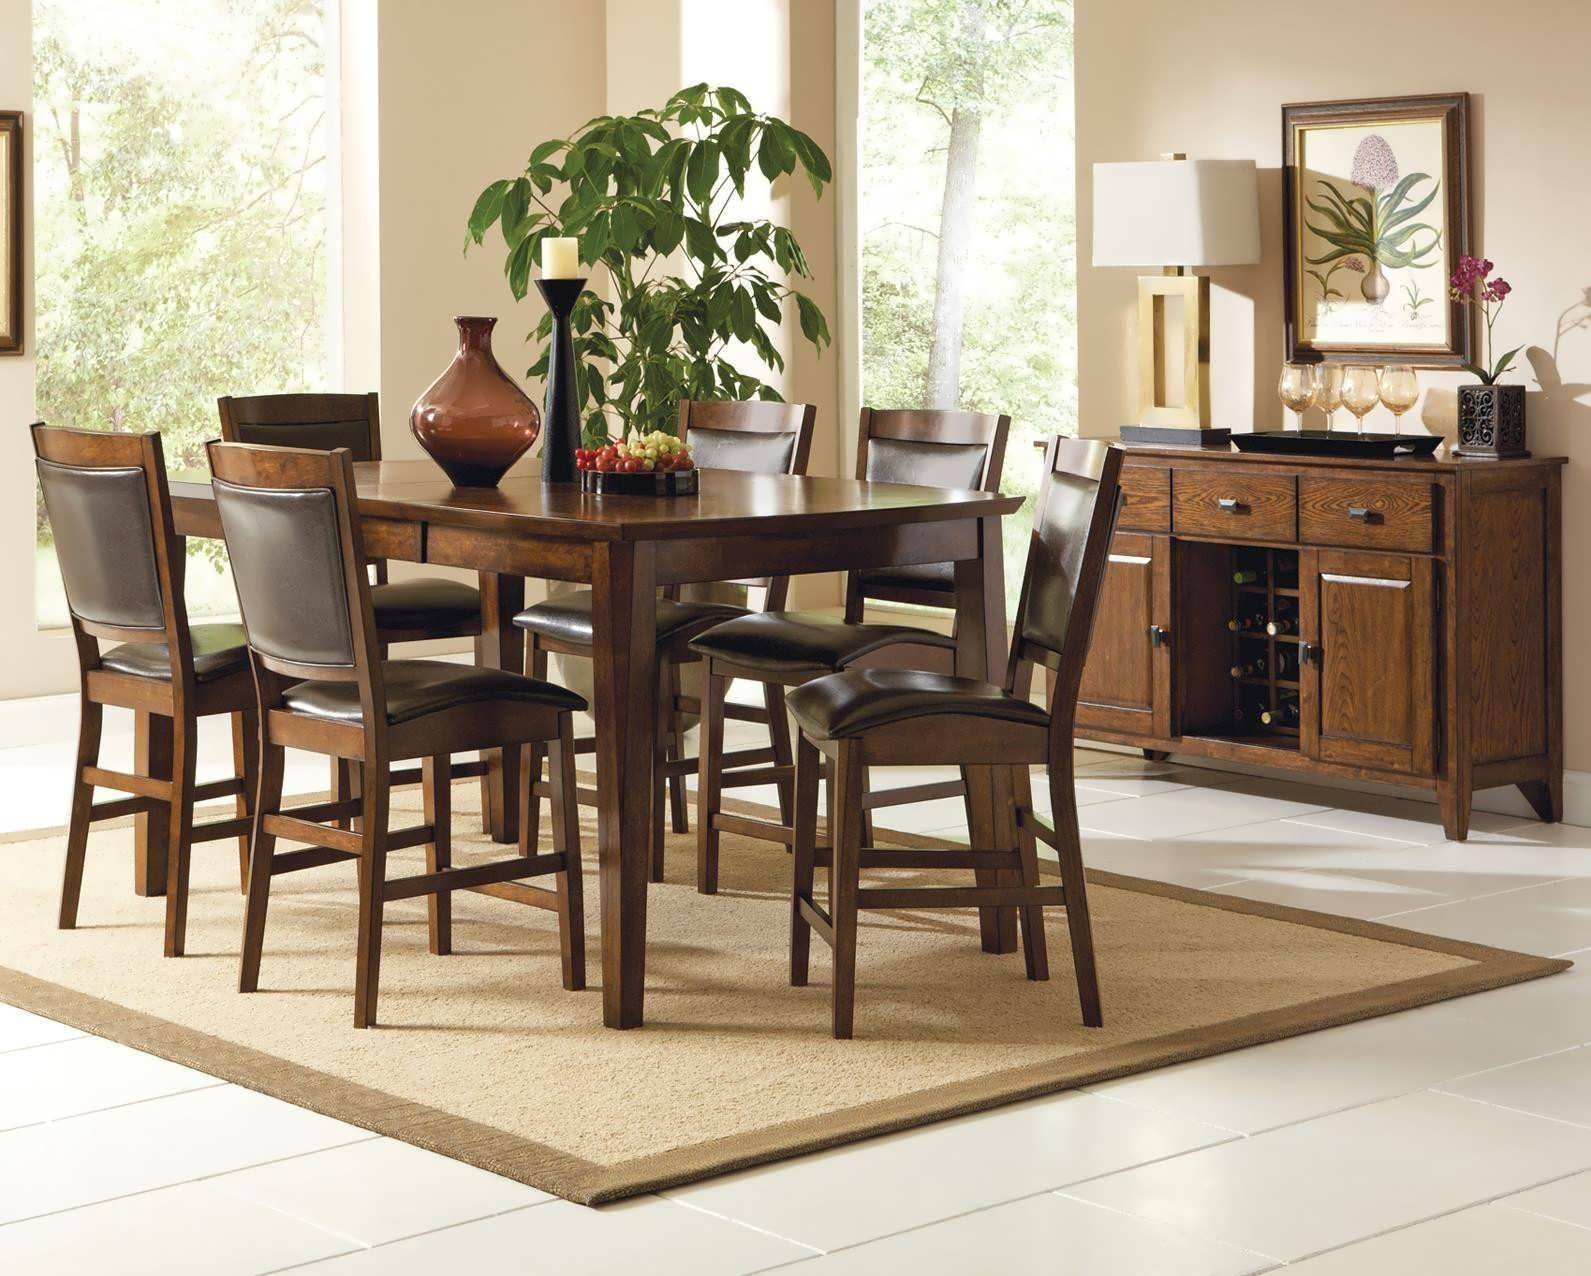 Elegant Counter Height Dining Sets Consist Of 5 Piece Counter Height Dining Set  Espresso Featured With 9